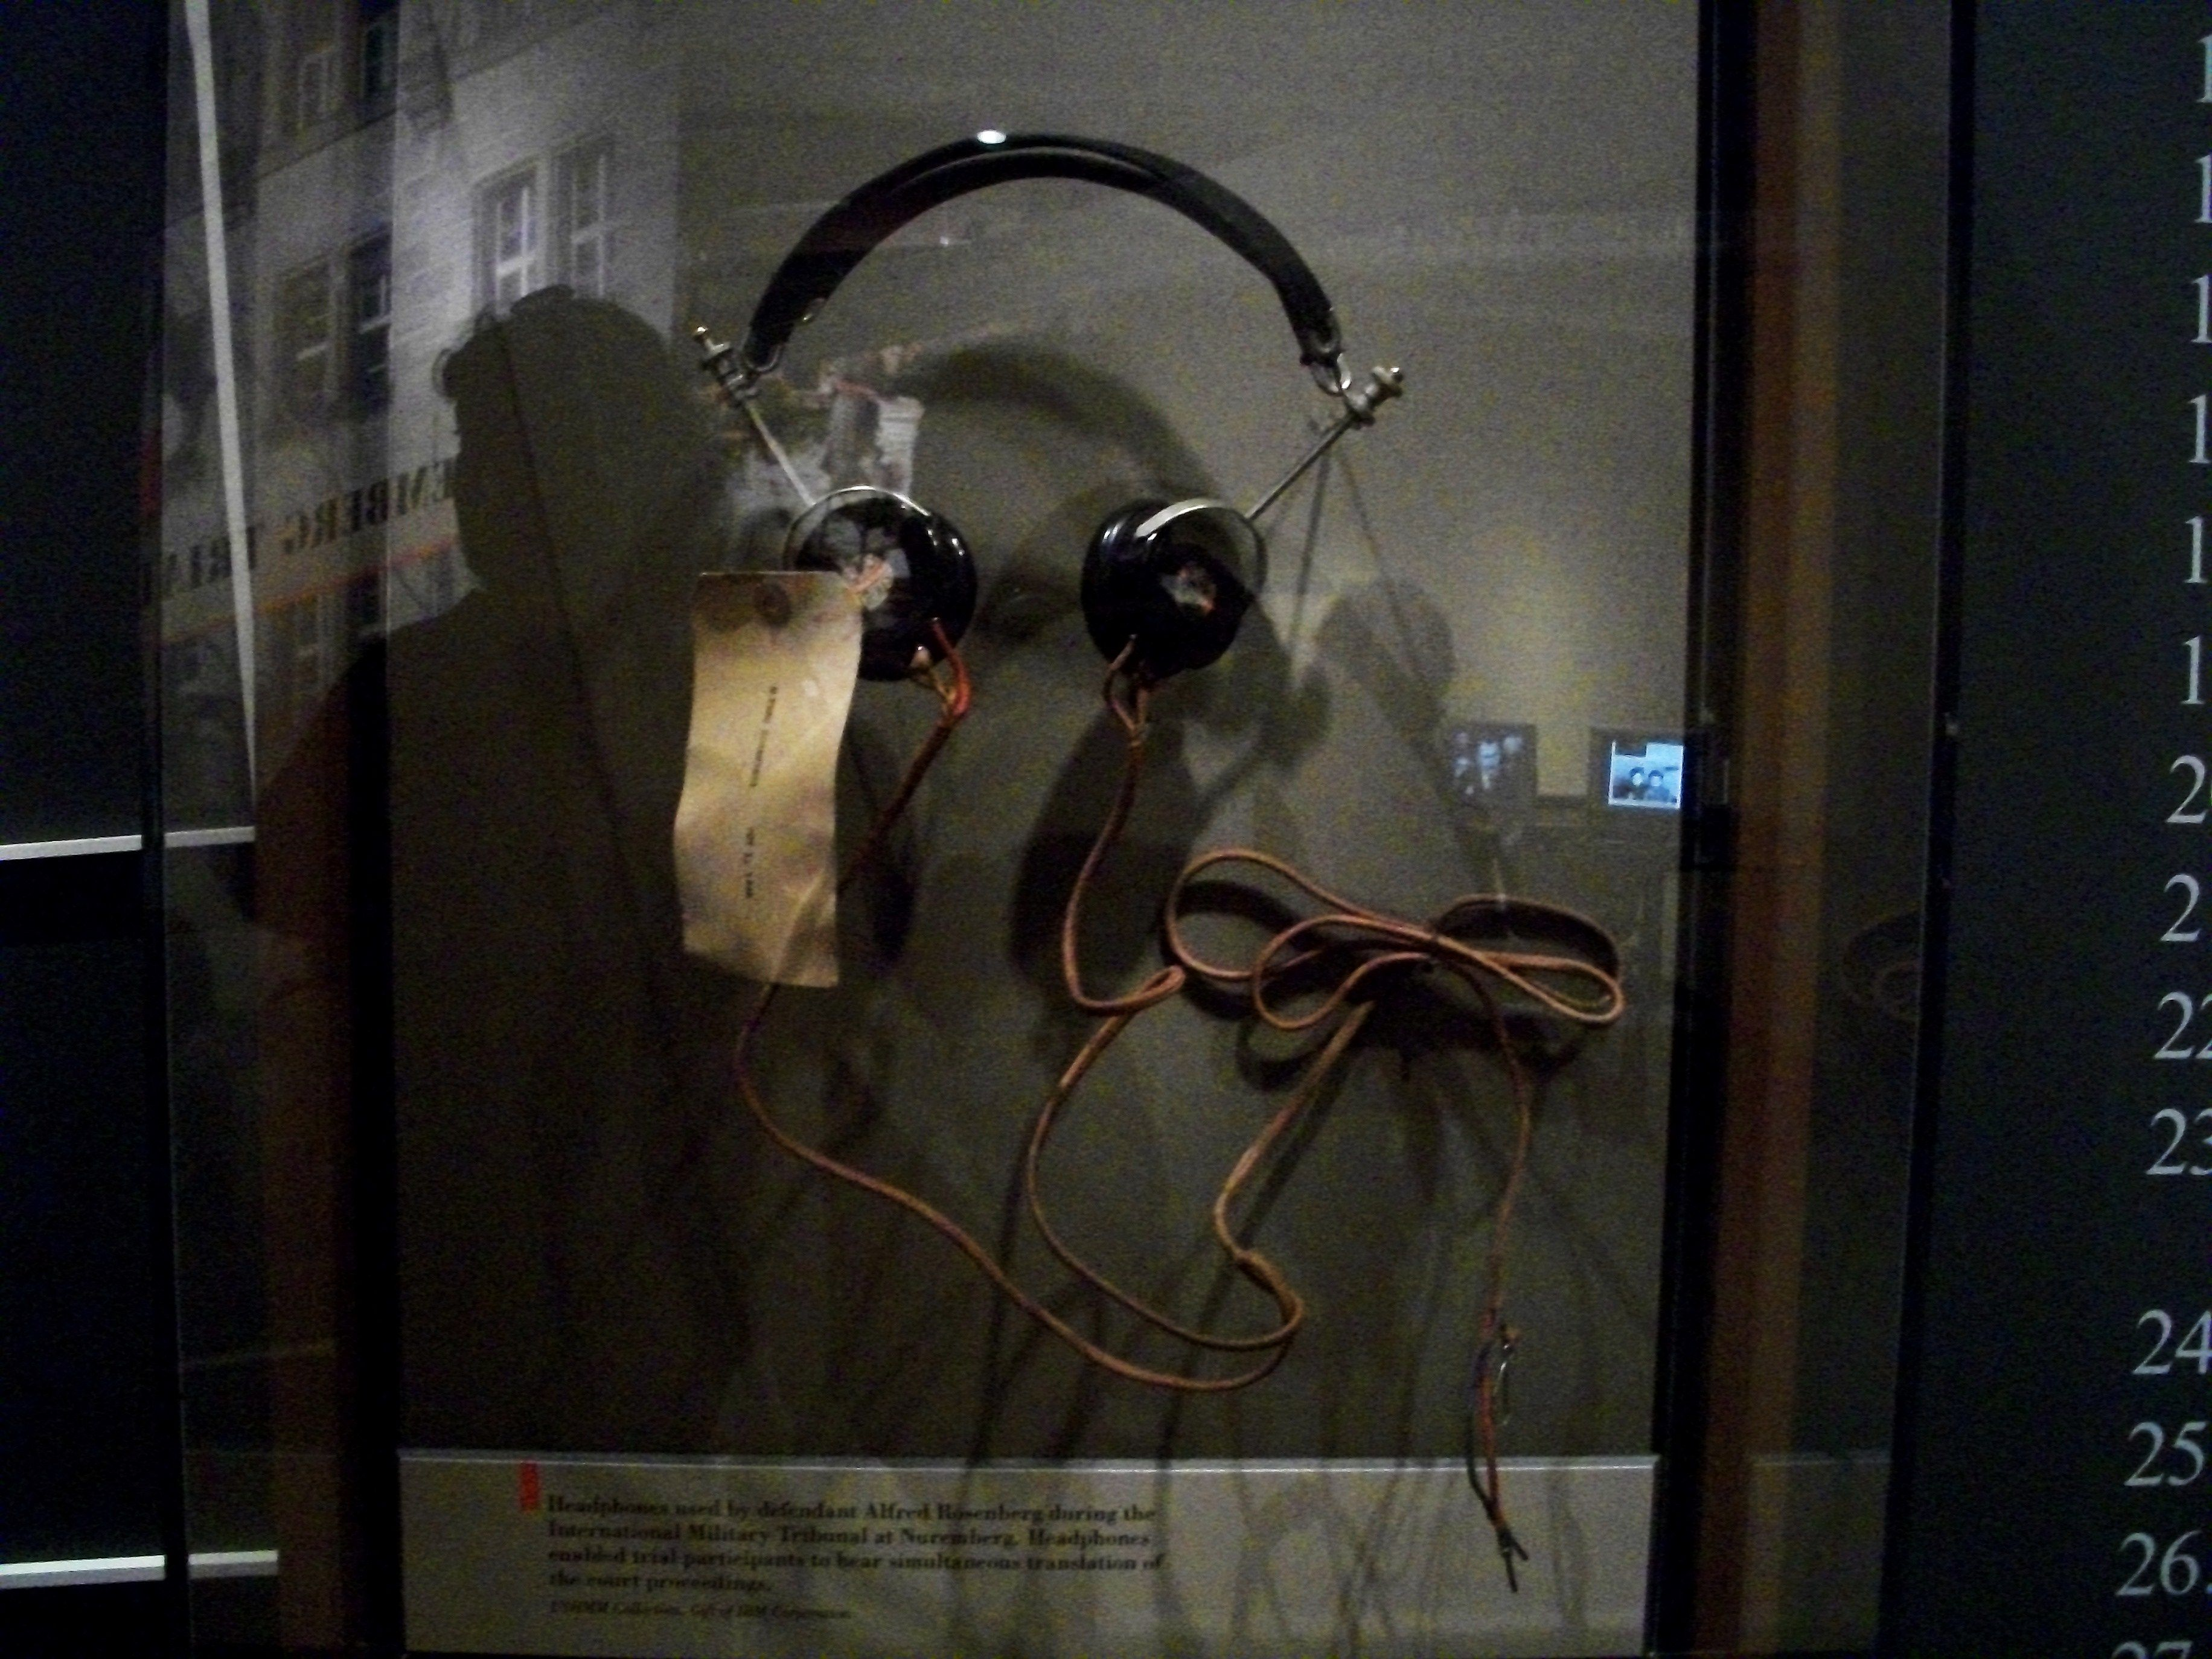 best images about hcc~nuremberg trials military tribunals on headphones used by defendant alfred rosenberg during the international military tribunal at nuremberg headphones enabled